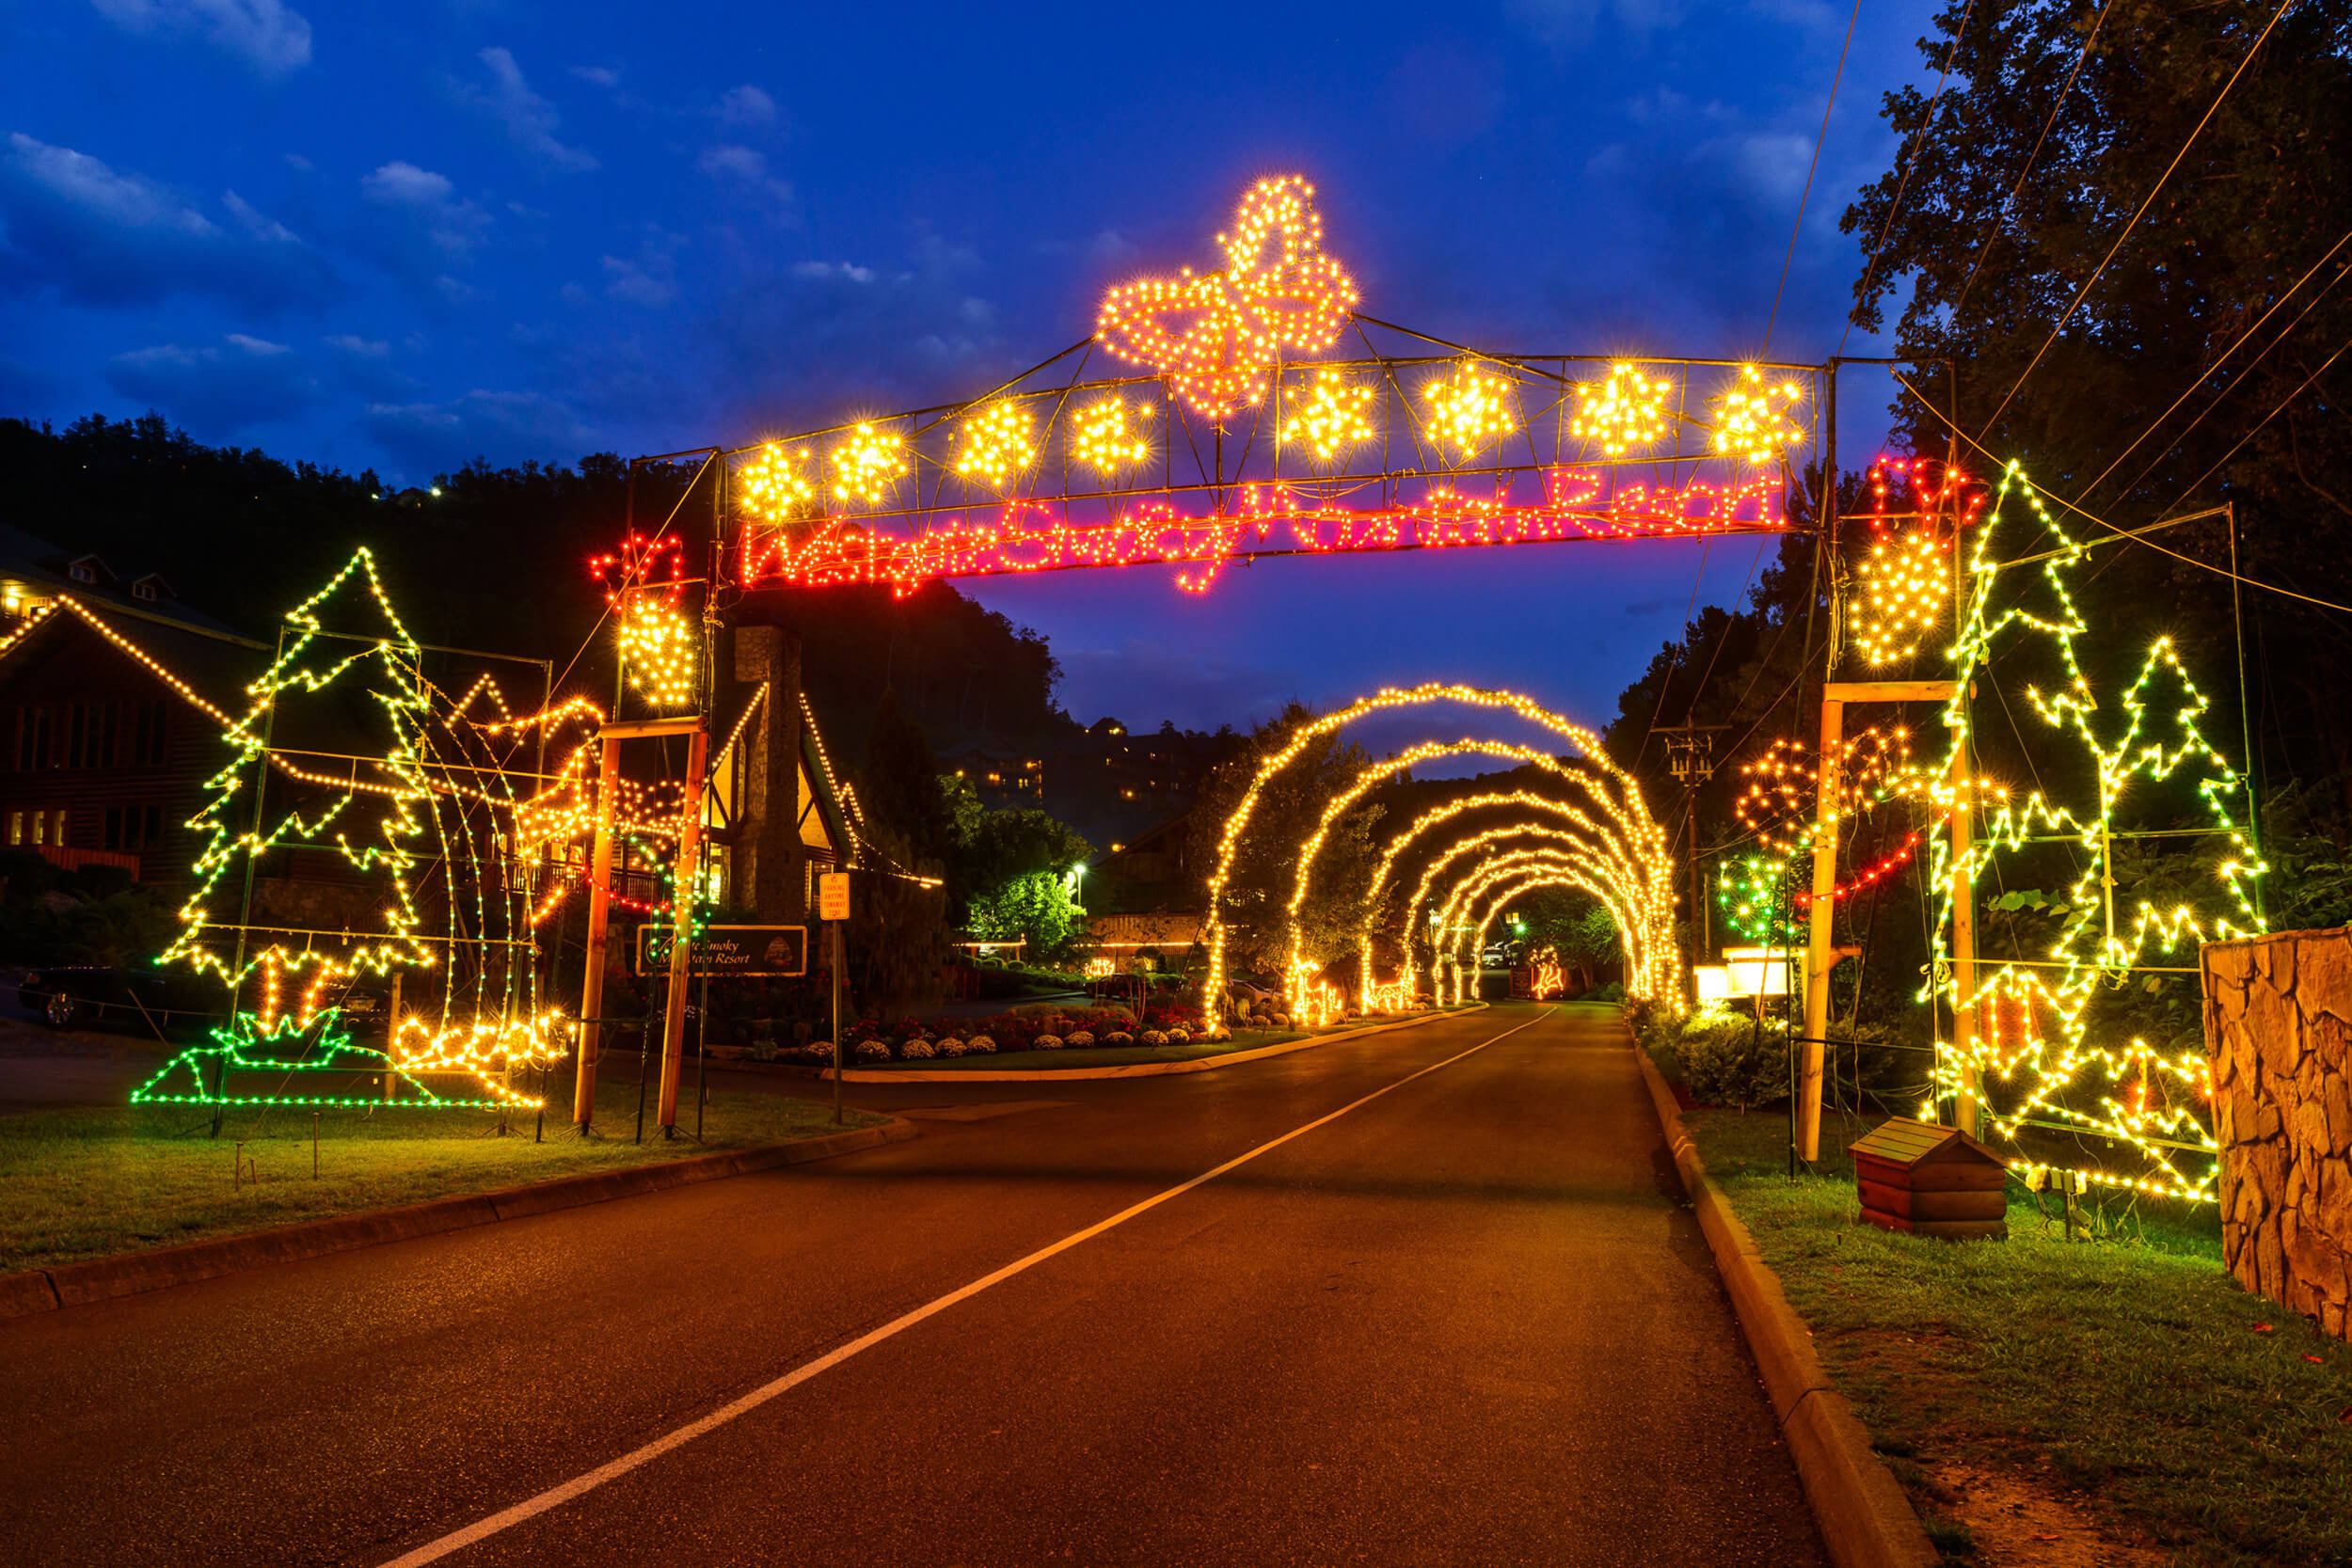 Resort entrance lit up for winter holidays | Westgate Smoky Mountain Resort & Spa